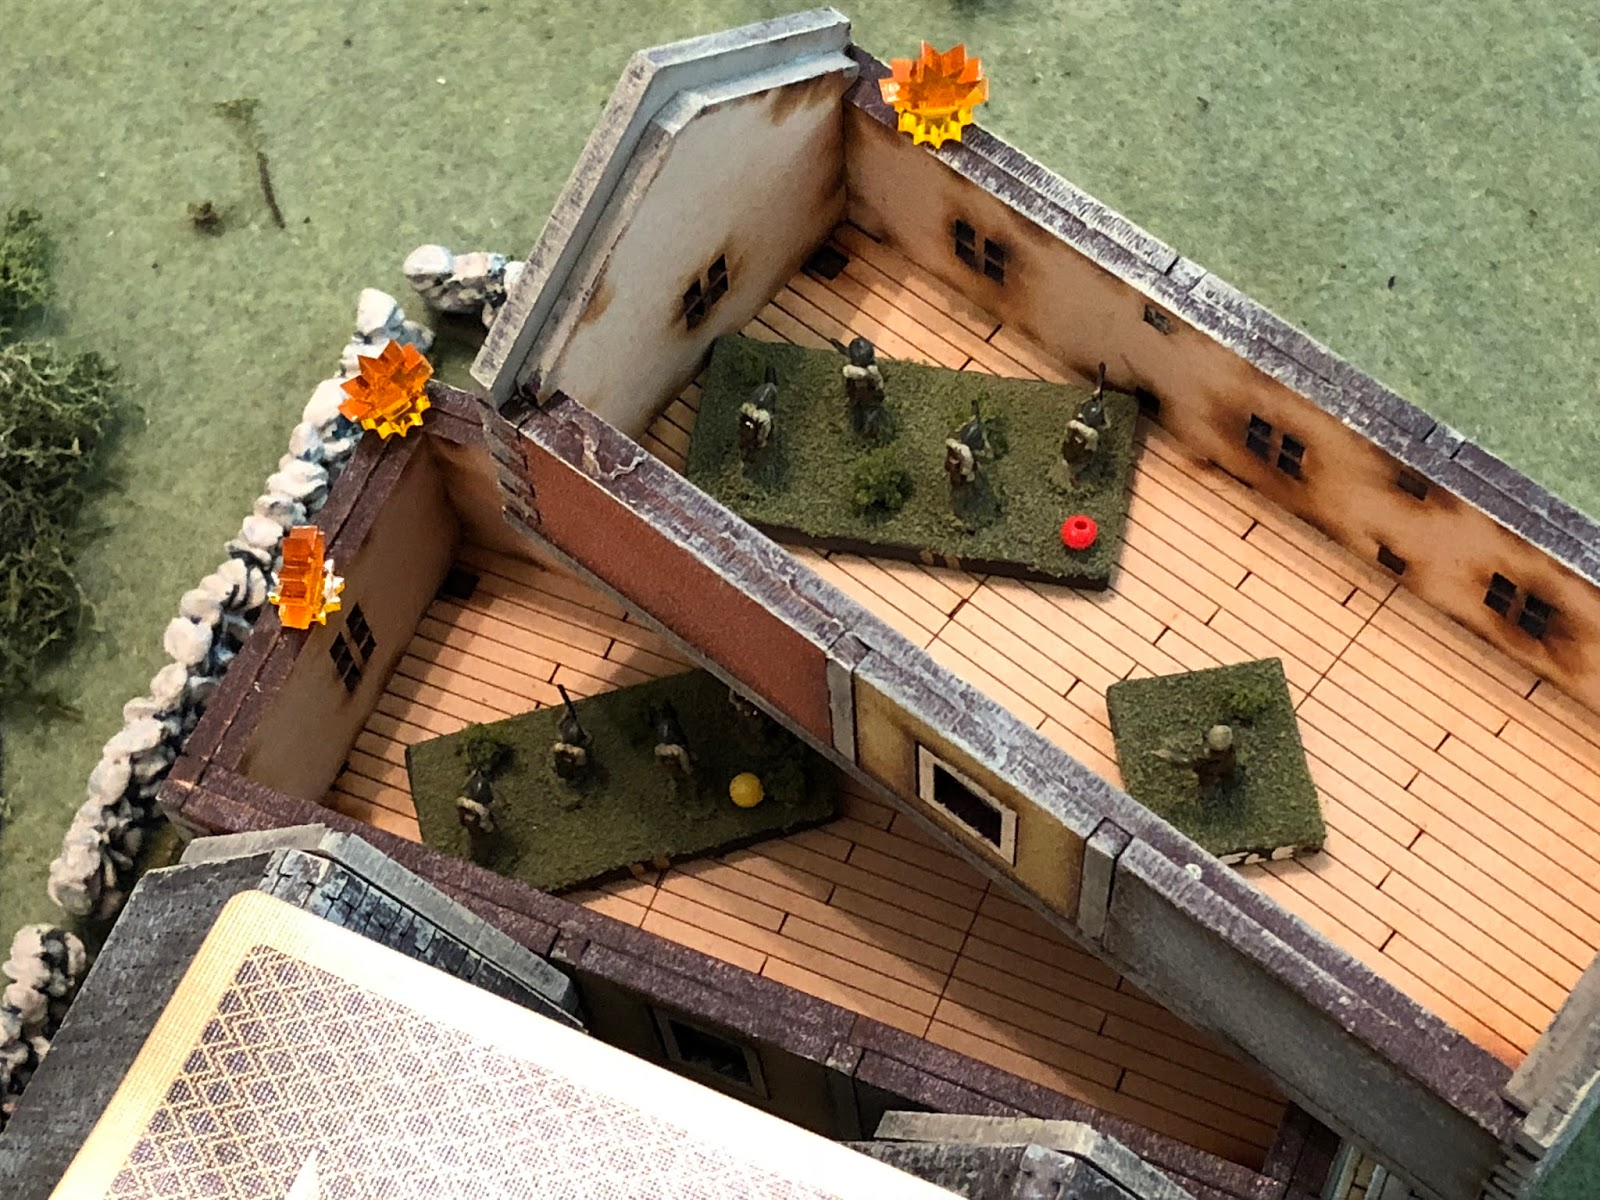 Pinning the enemy squad on the 2nd floor (yellow bead).